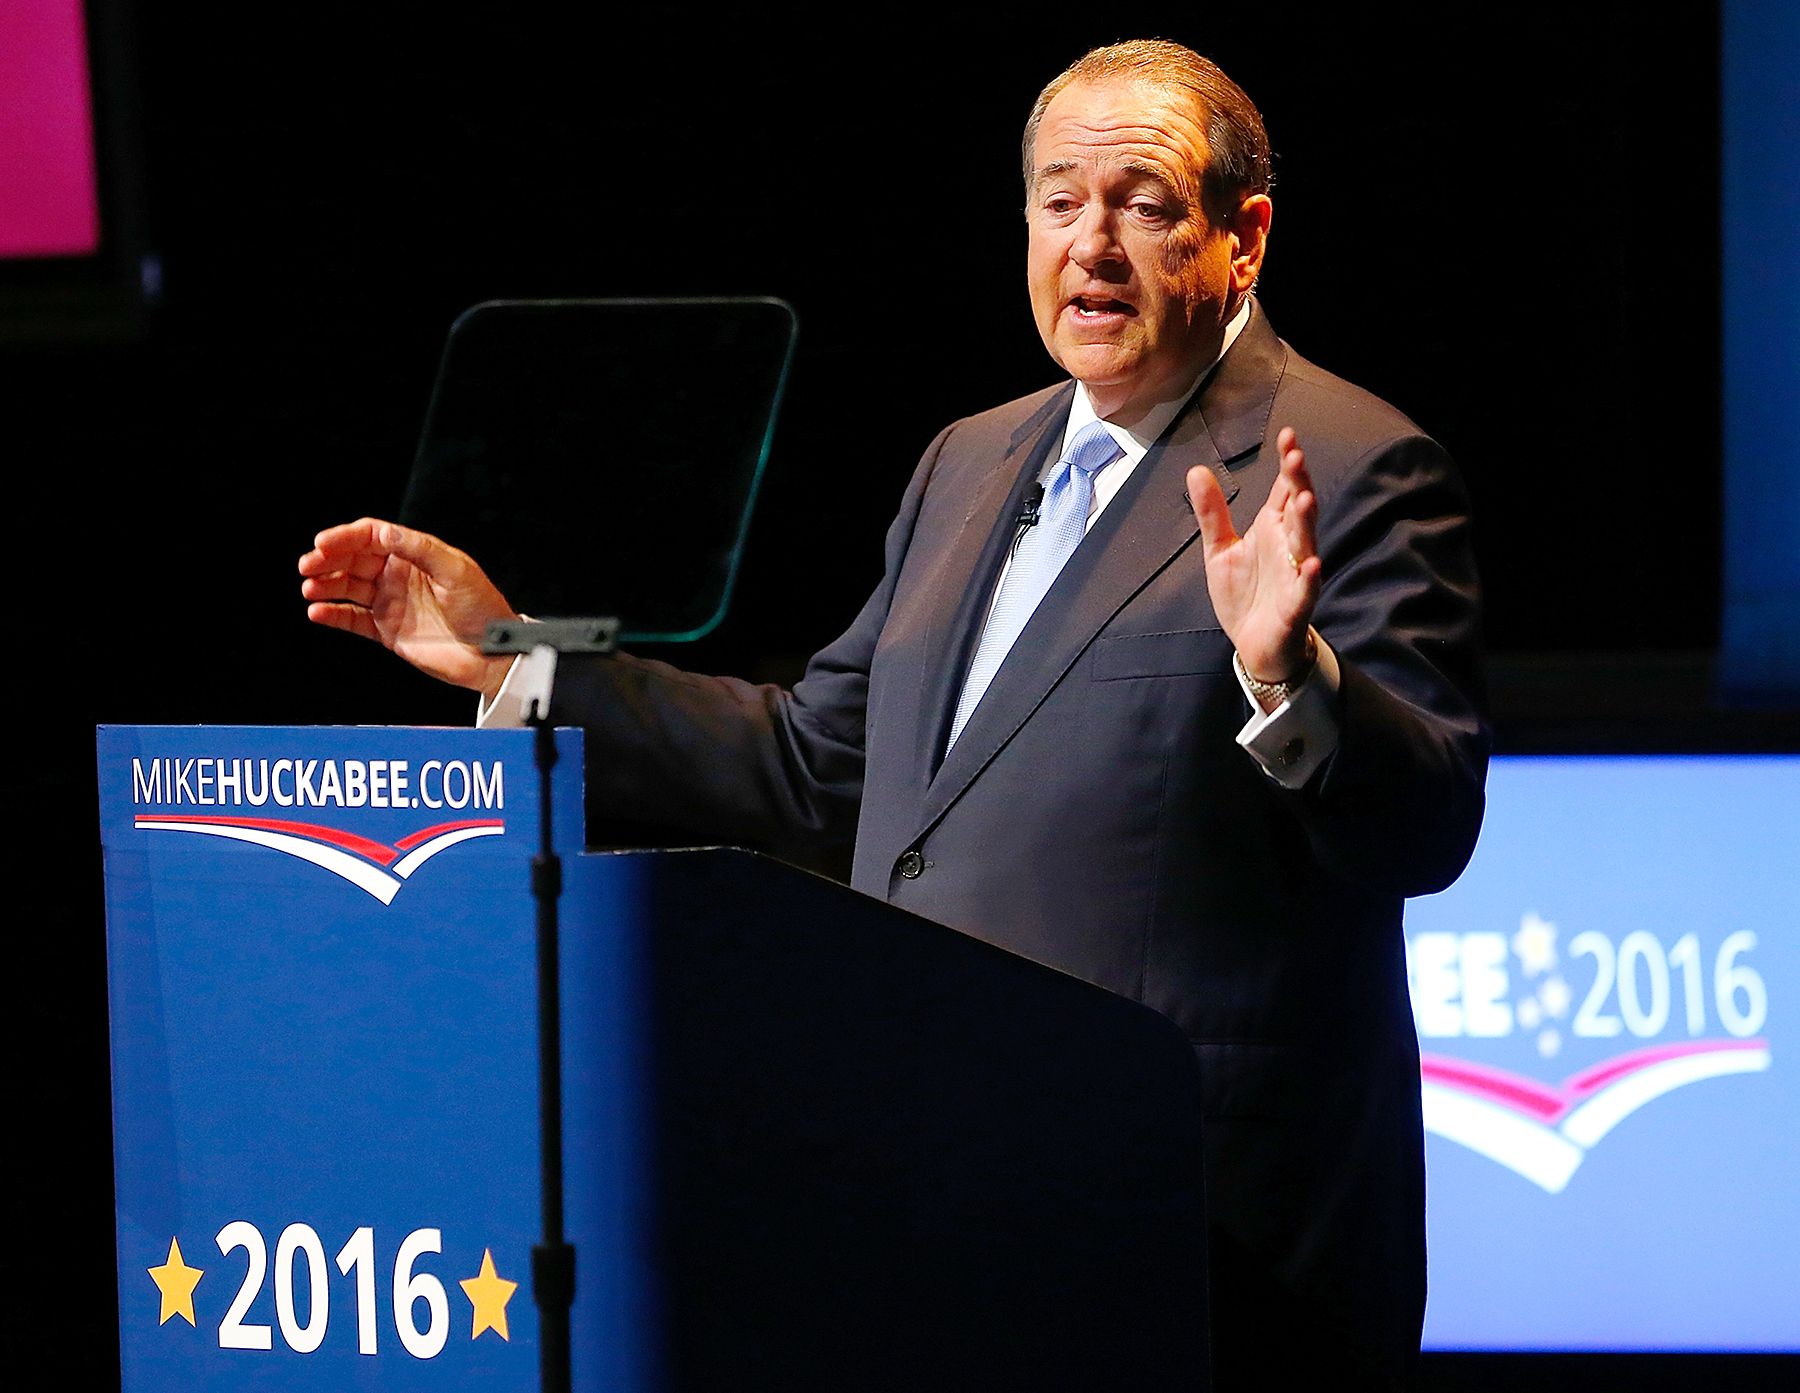 Mike Huckabee wants to peek into the girls' locker room, and he's man enough to admit it.